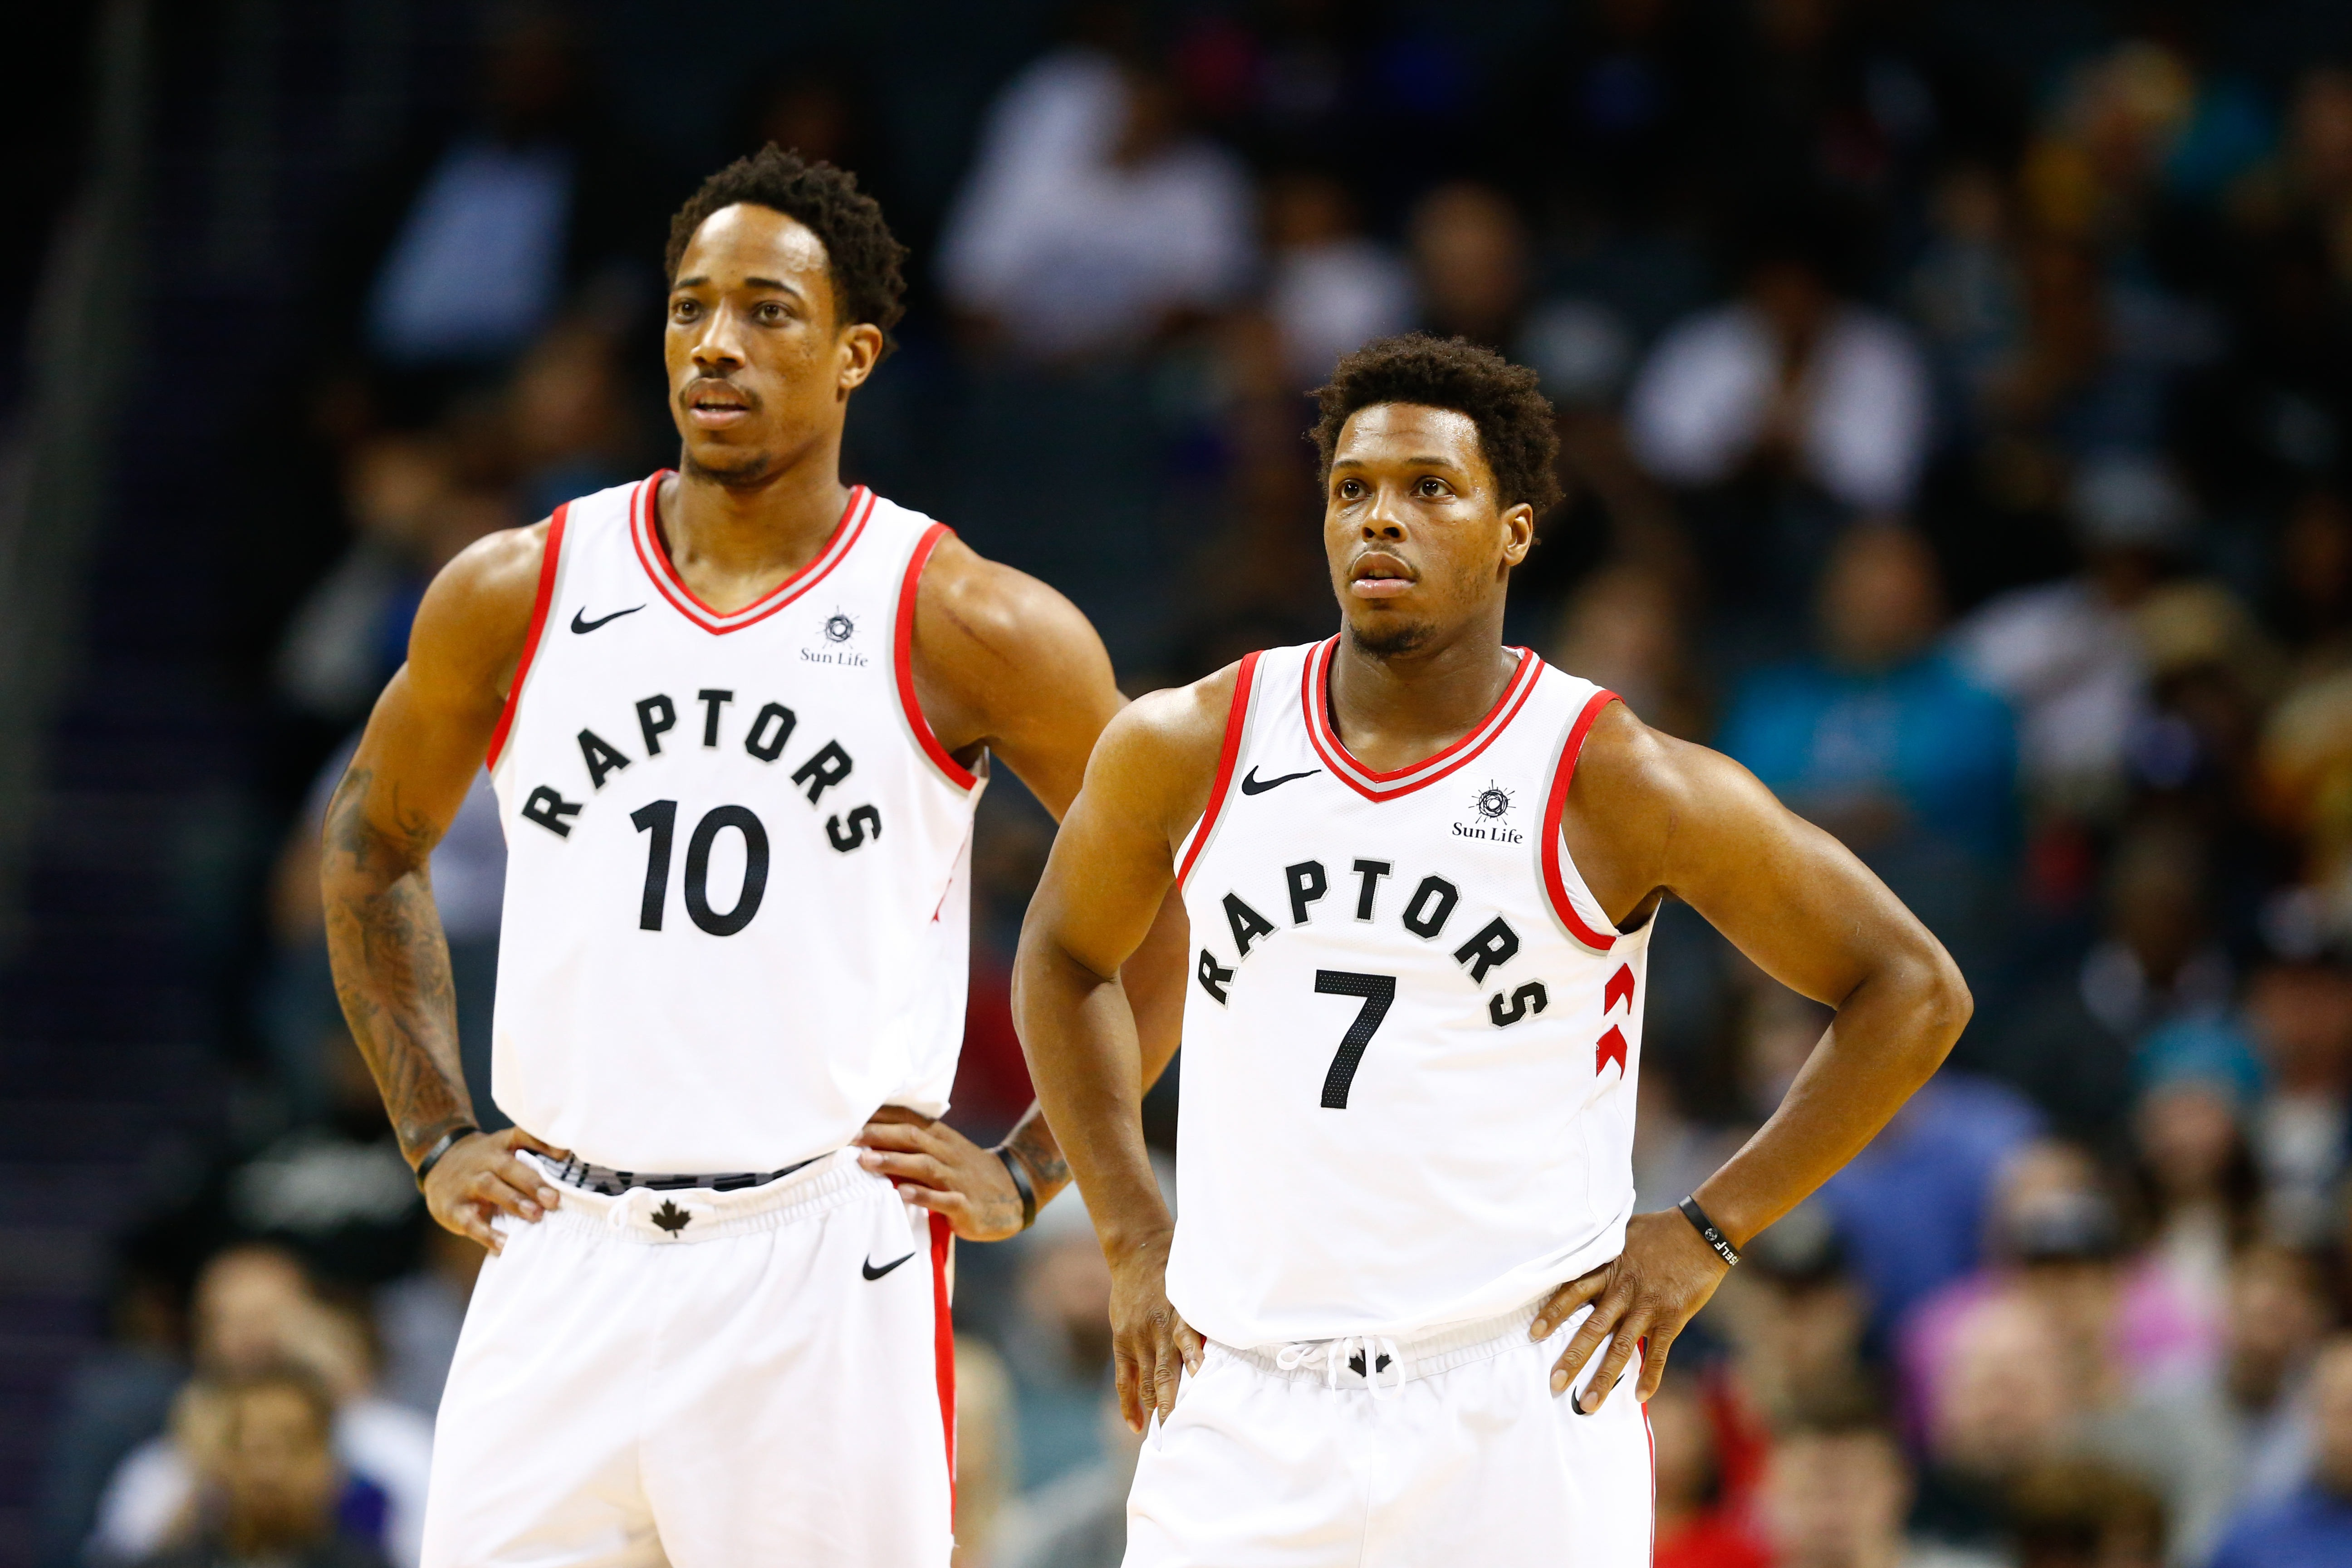 DeMar DeRozan And Kyle Lowry Aren t To Blame For Toronto s Struggles d1c035e3a